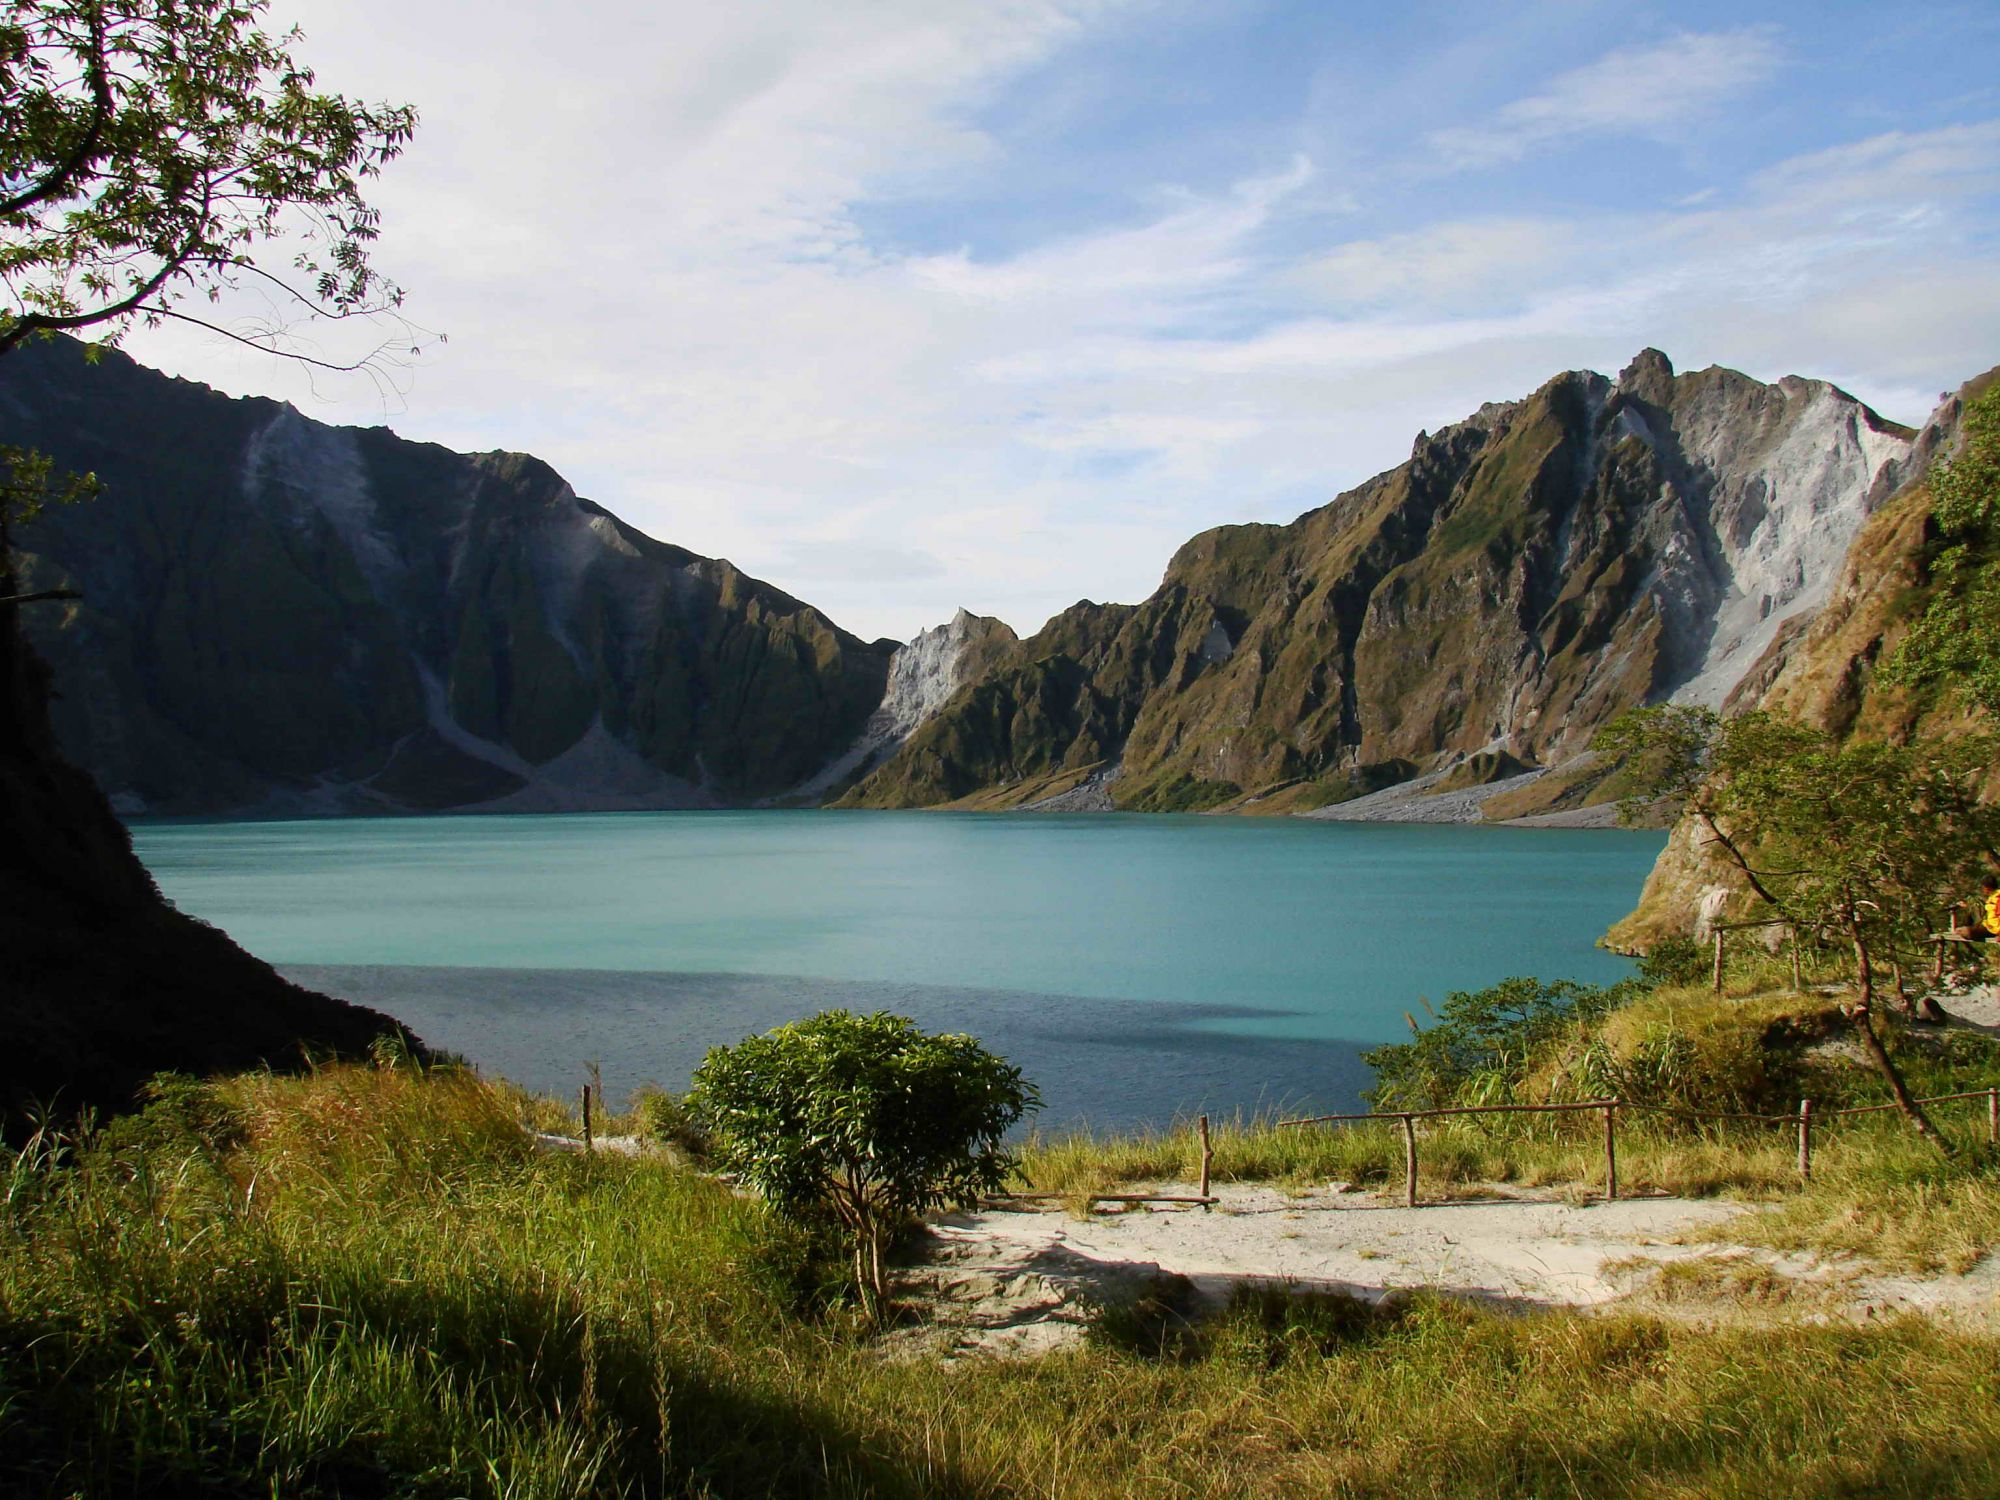 Mount Pinatubo Raised To Alert Level 1: Here Are 11 Facts About The Volcano